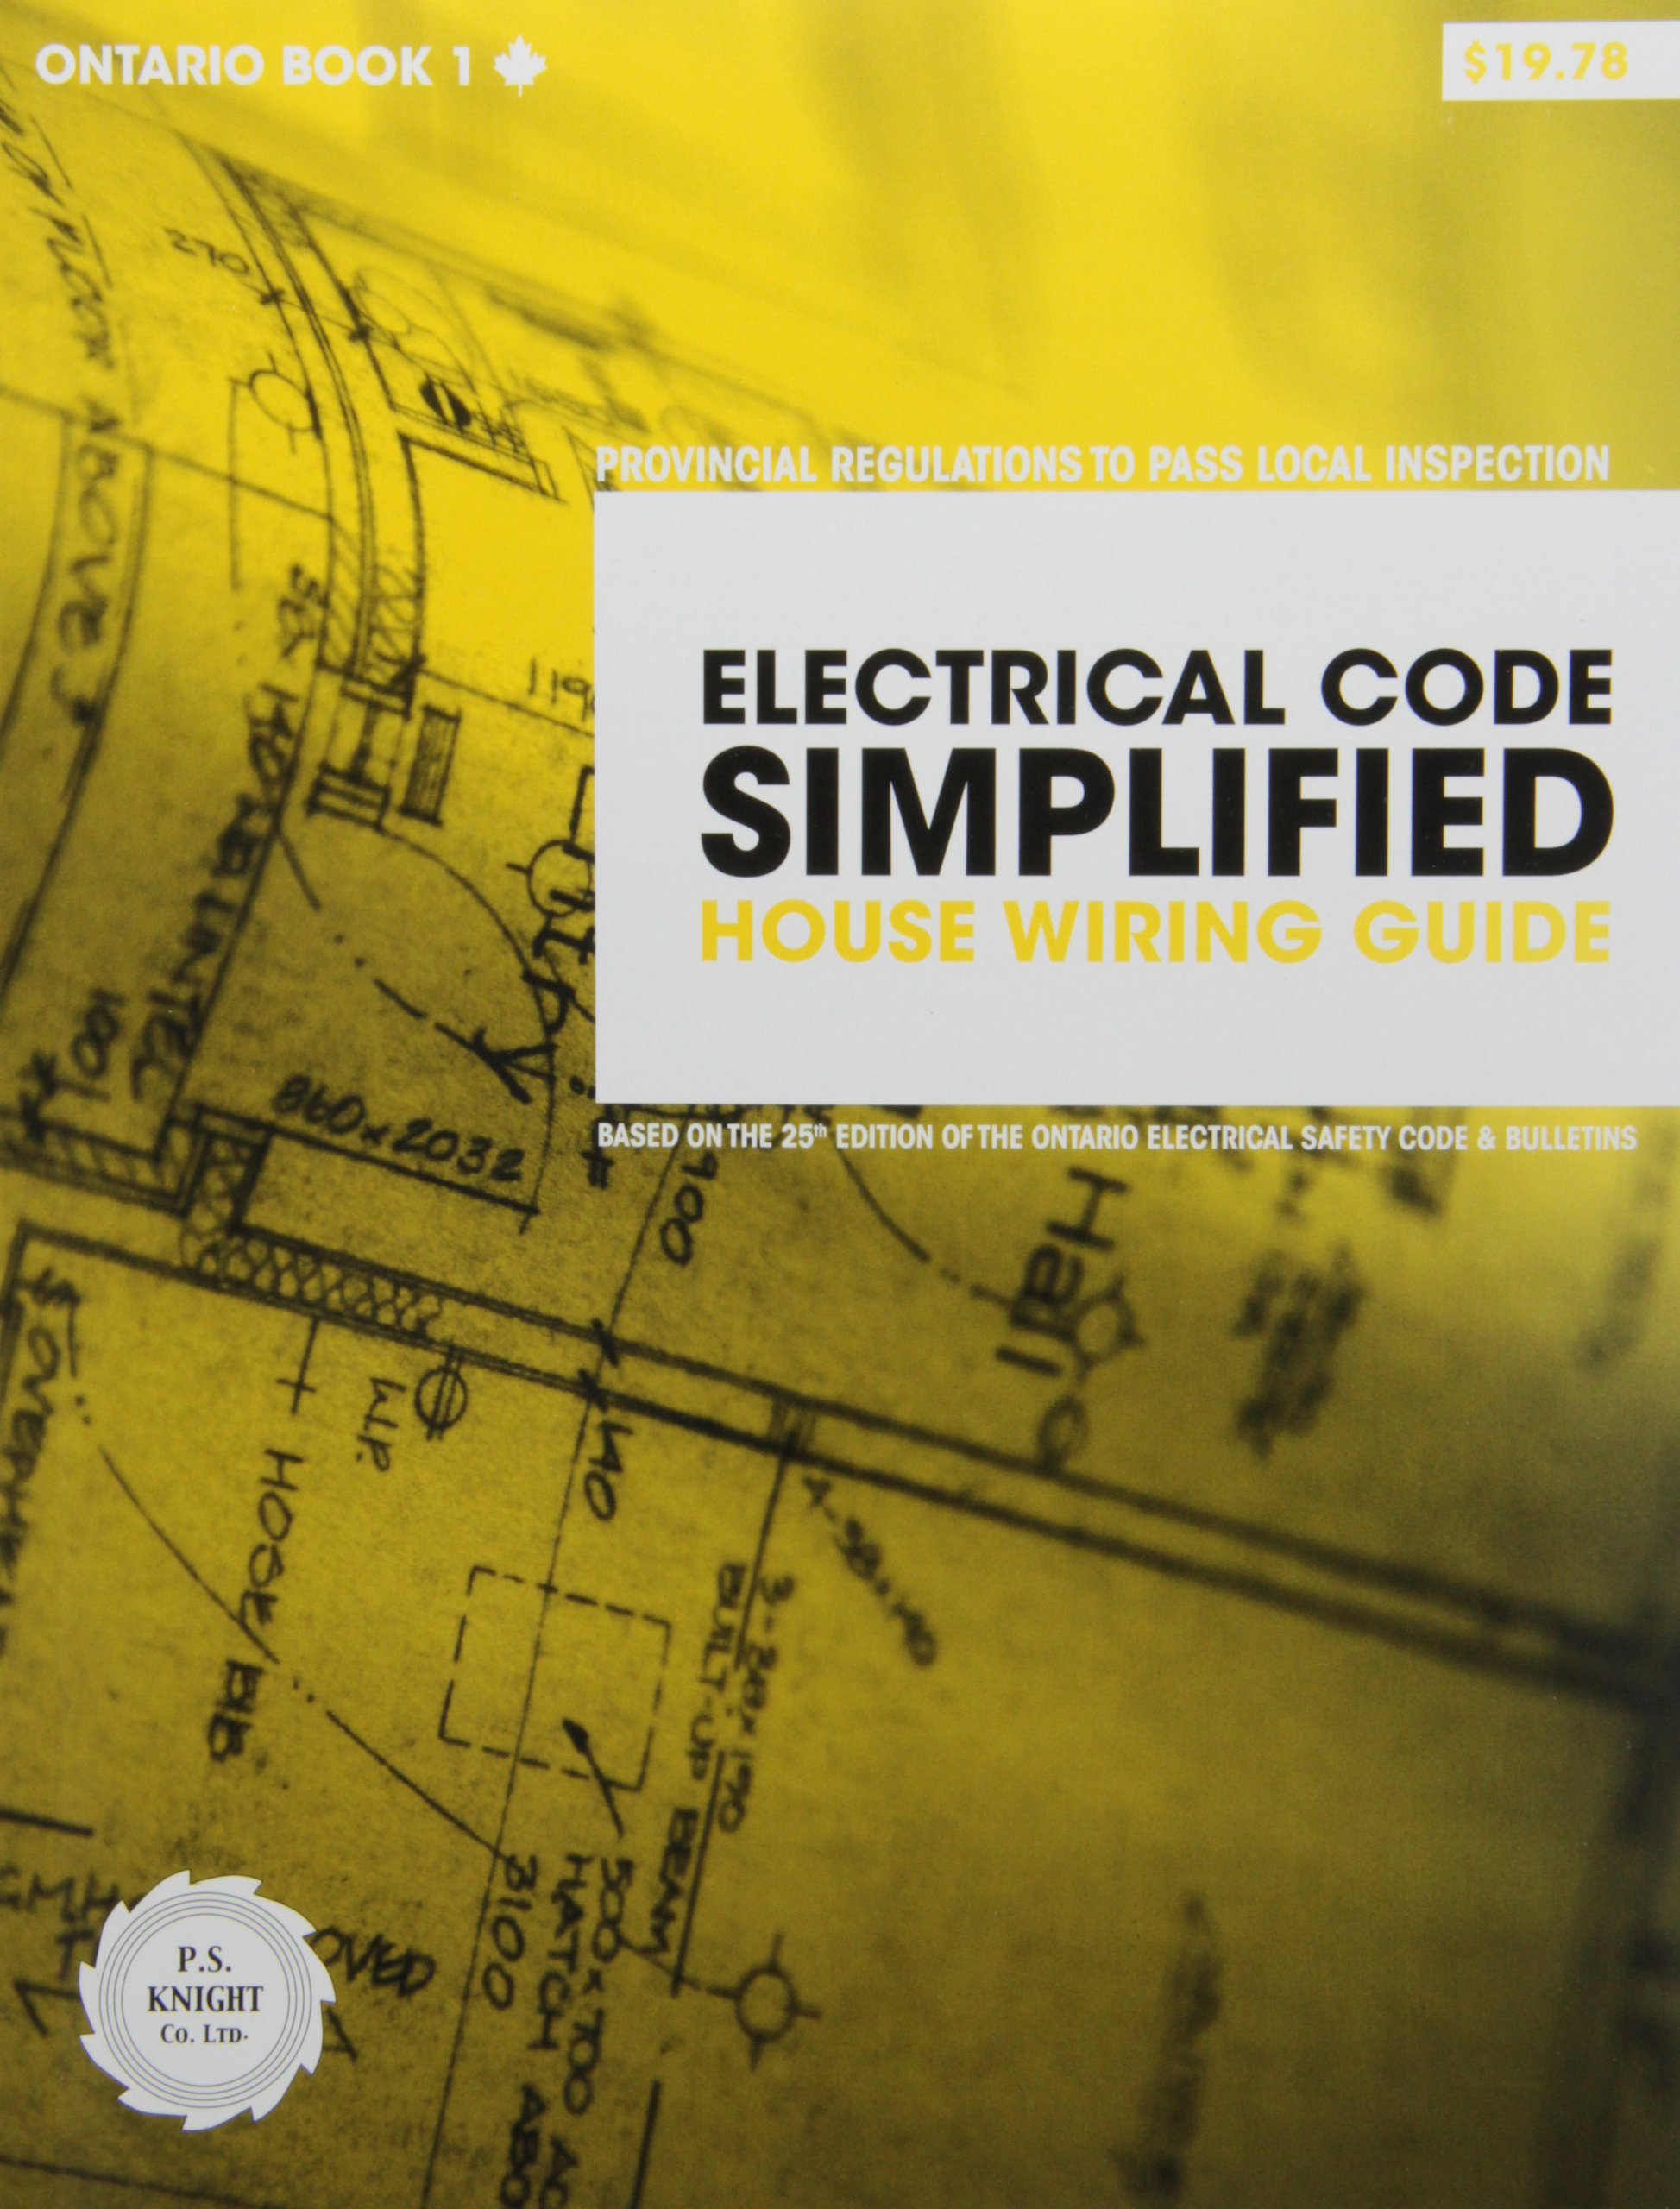 Electrical Code Simplified Ontario Book 1 House Wiring Guide P S